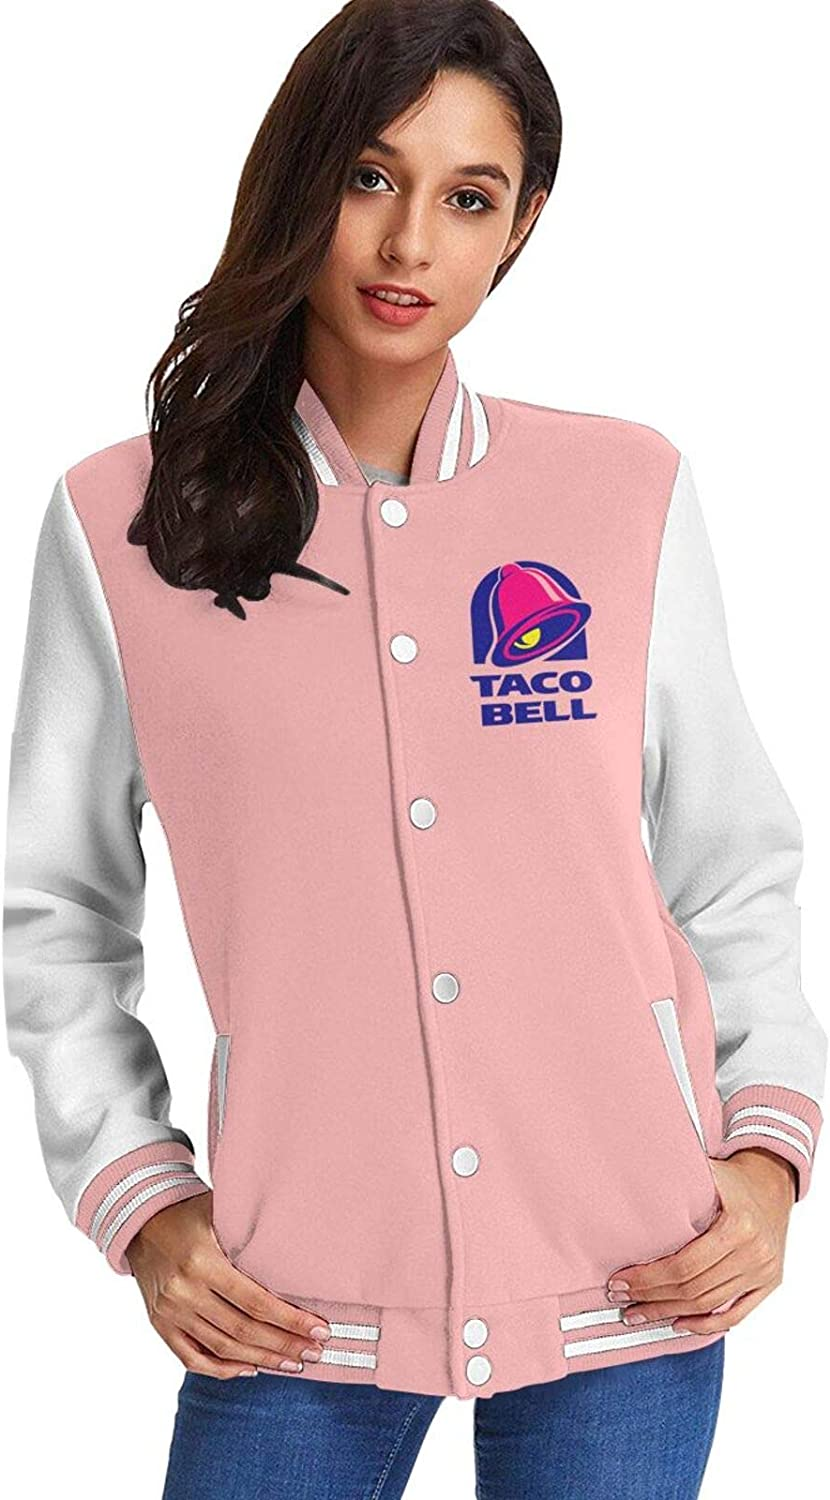 Majestic Bell with Taco Womans Baseball Uniform Jacket Unisex Casual Long Sleeve Sweater